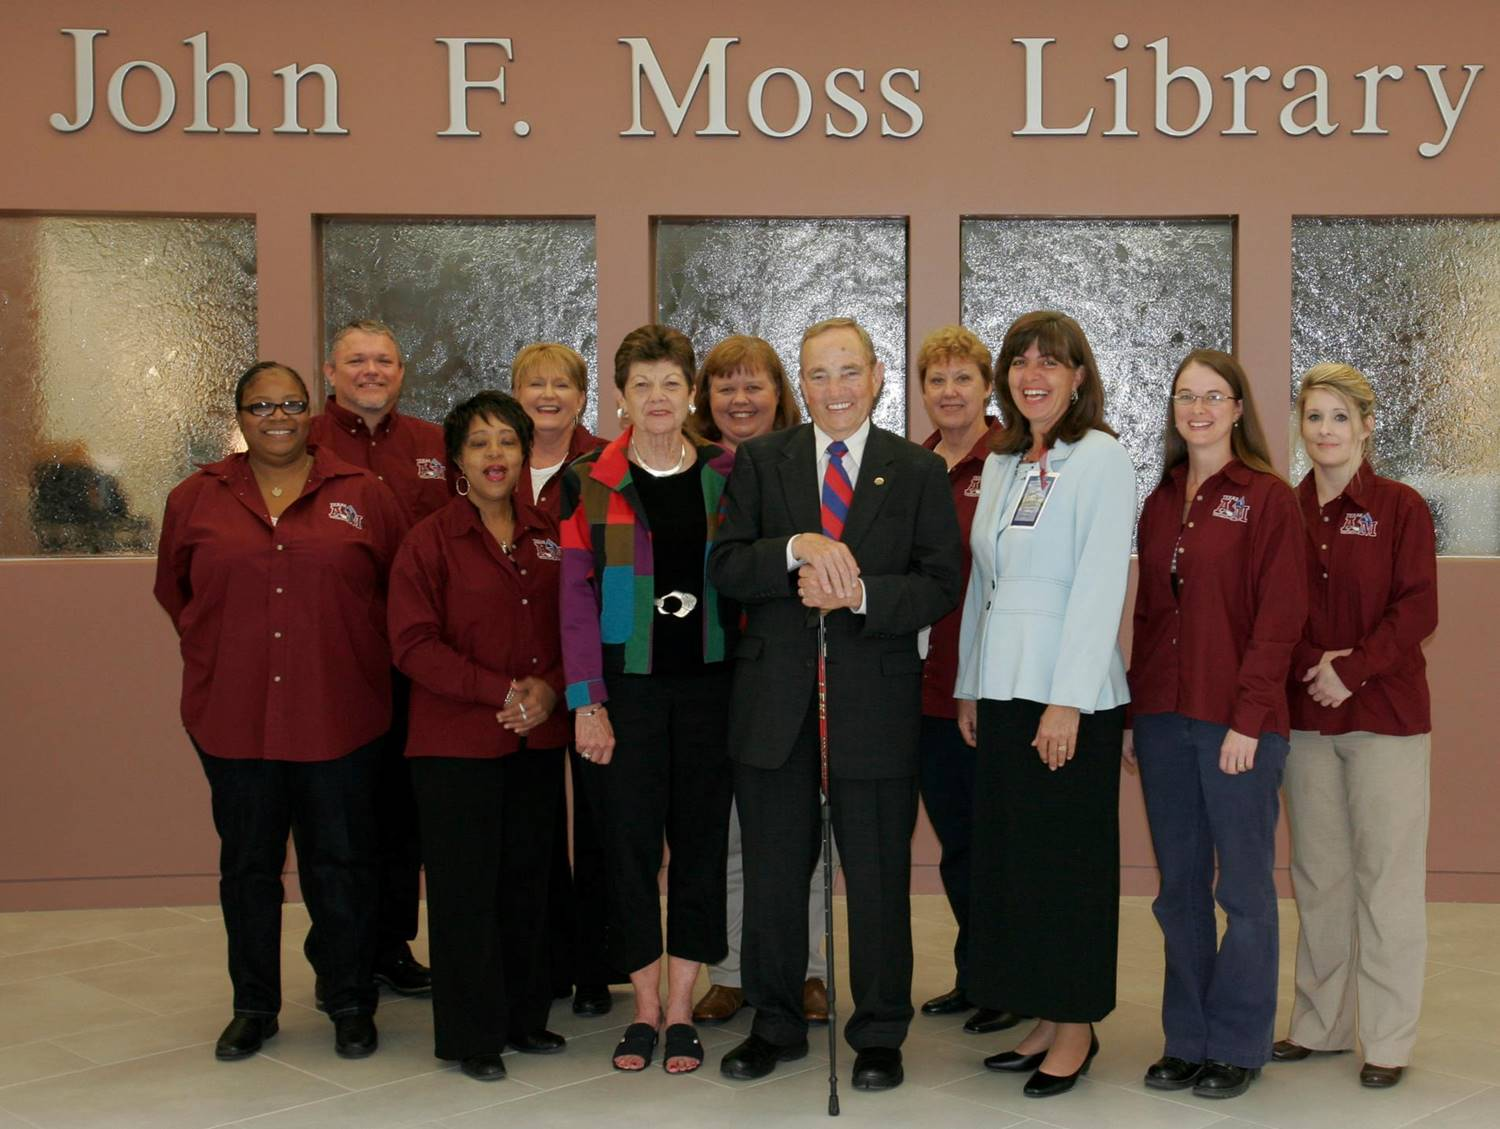 Photo of library staff in front of John F Moss Library with Mr. & Mrs. John F. Moss